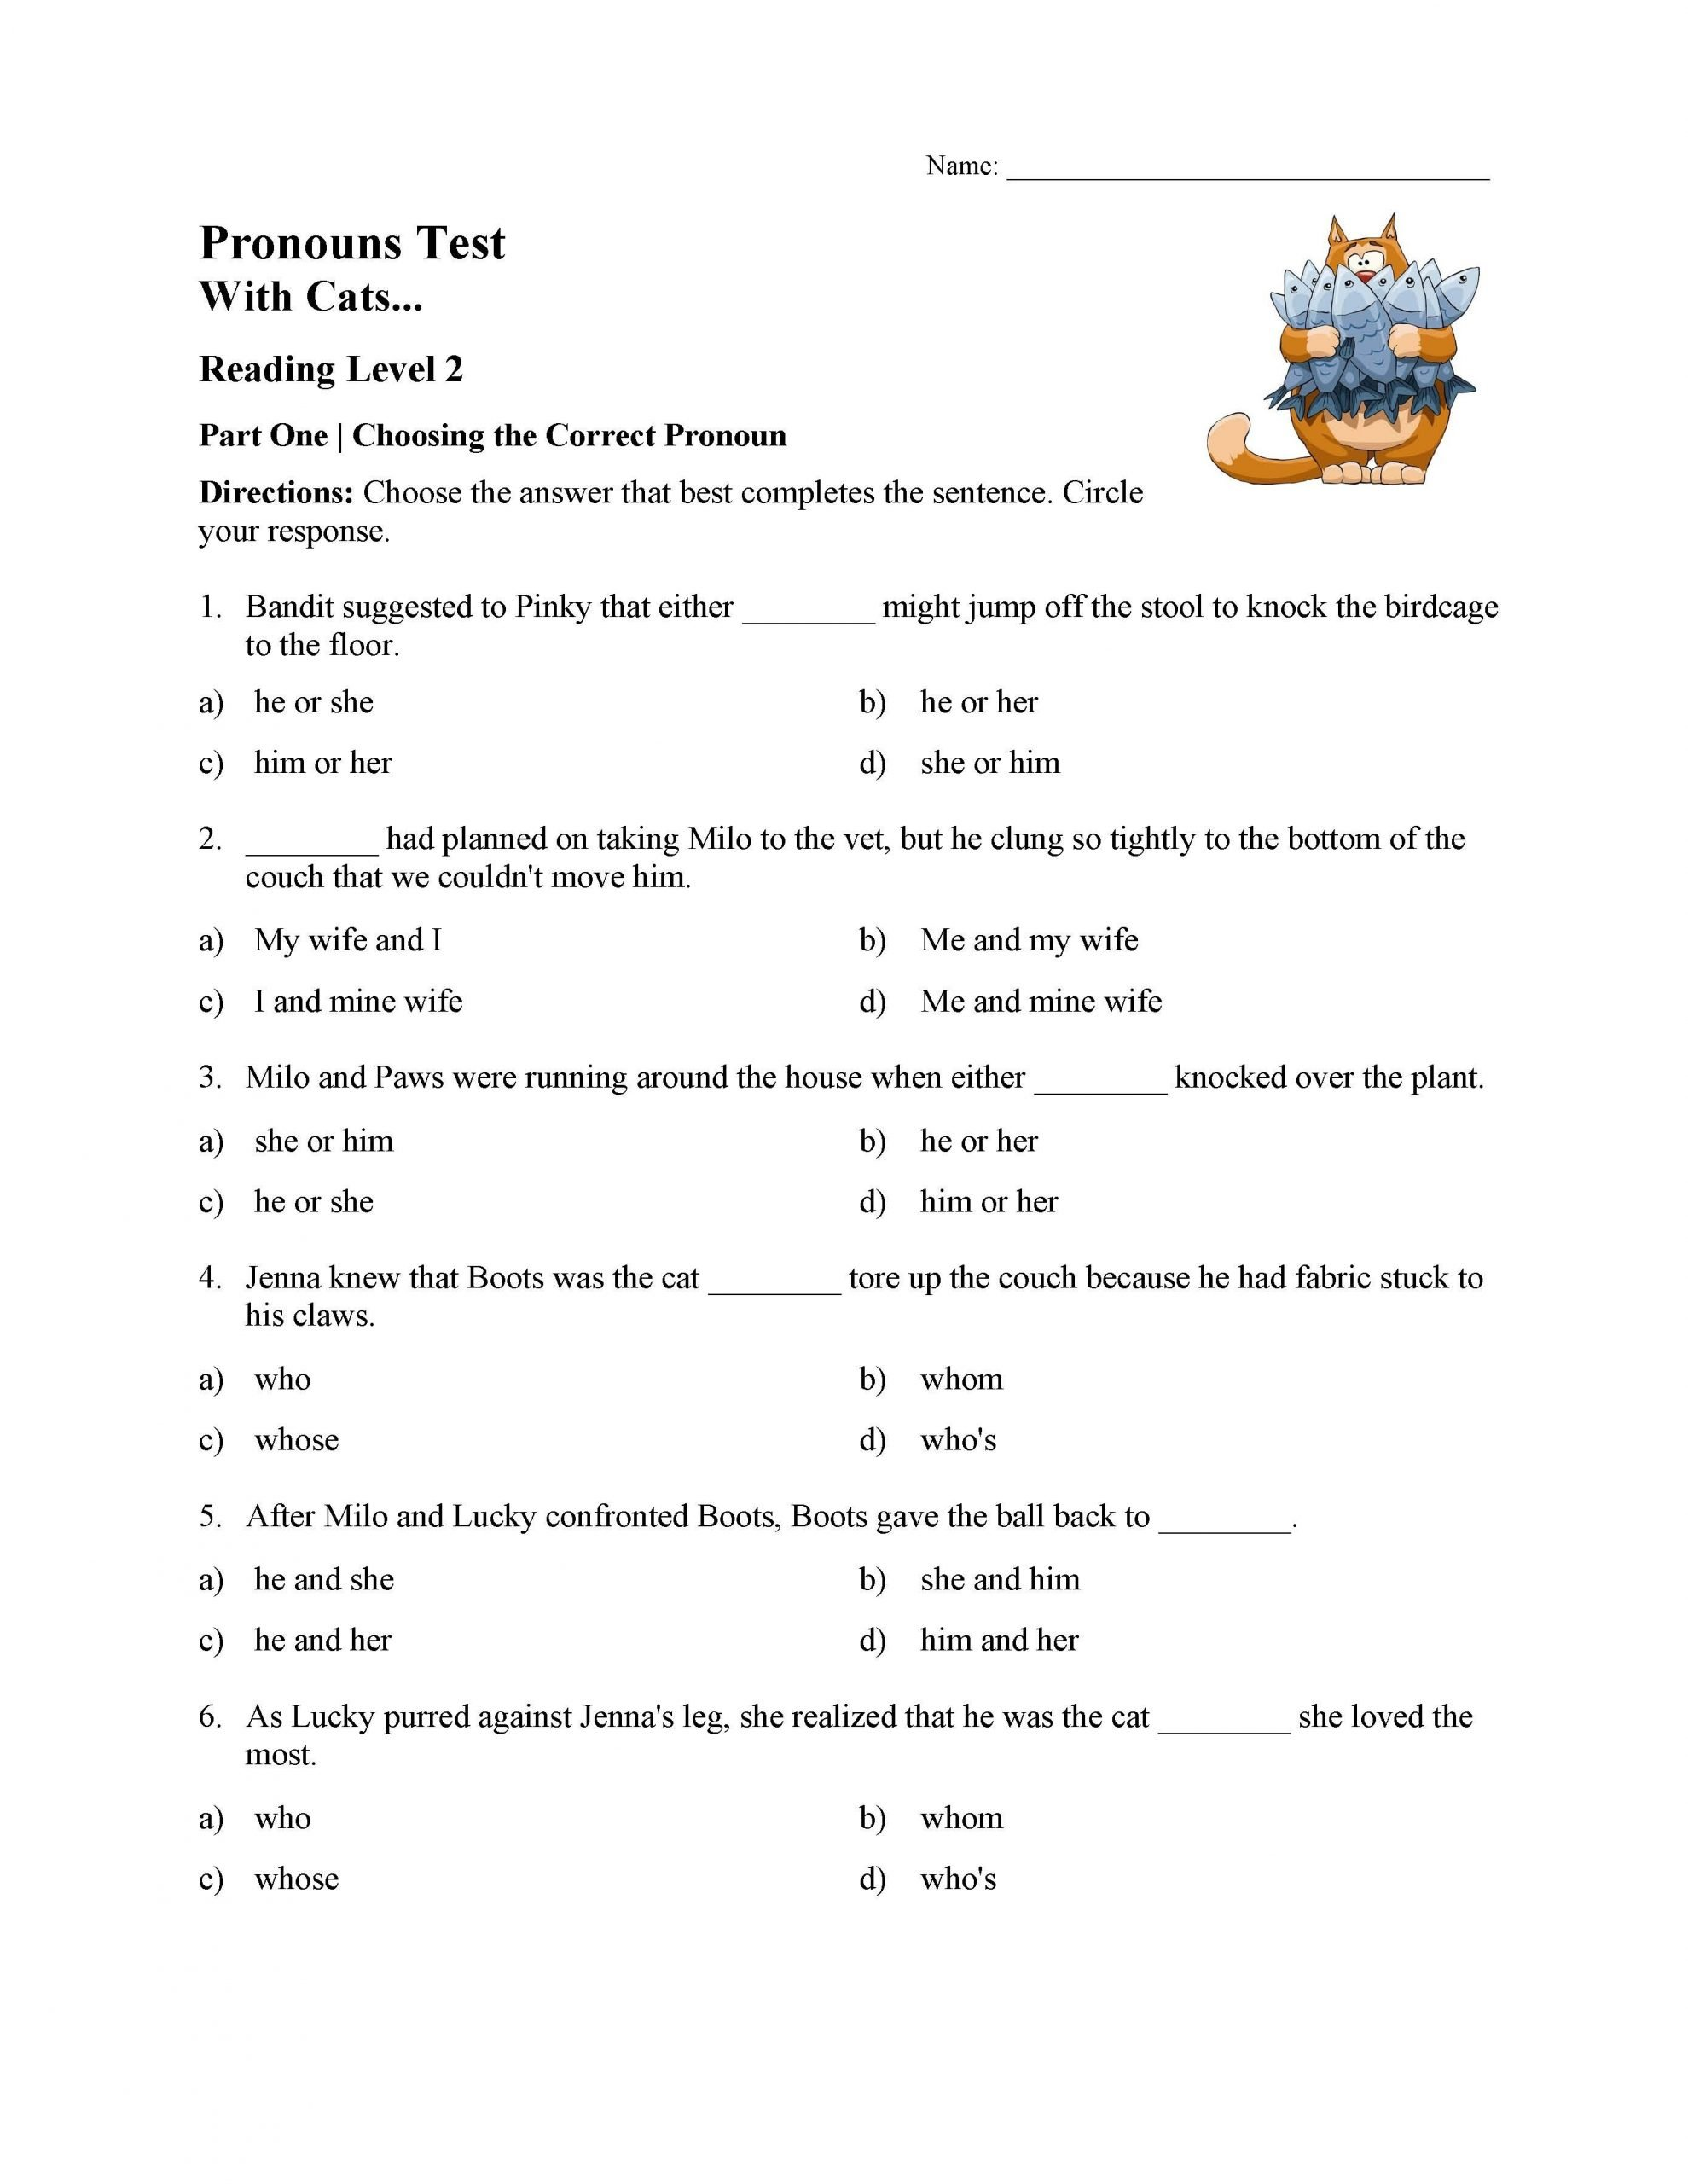 6th Grade Pronoun Worksheets Pronouns Test with Cats Reading Level 2